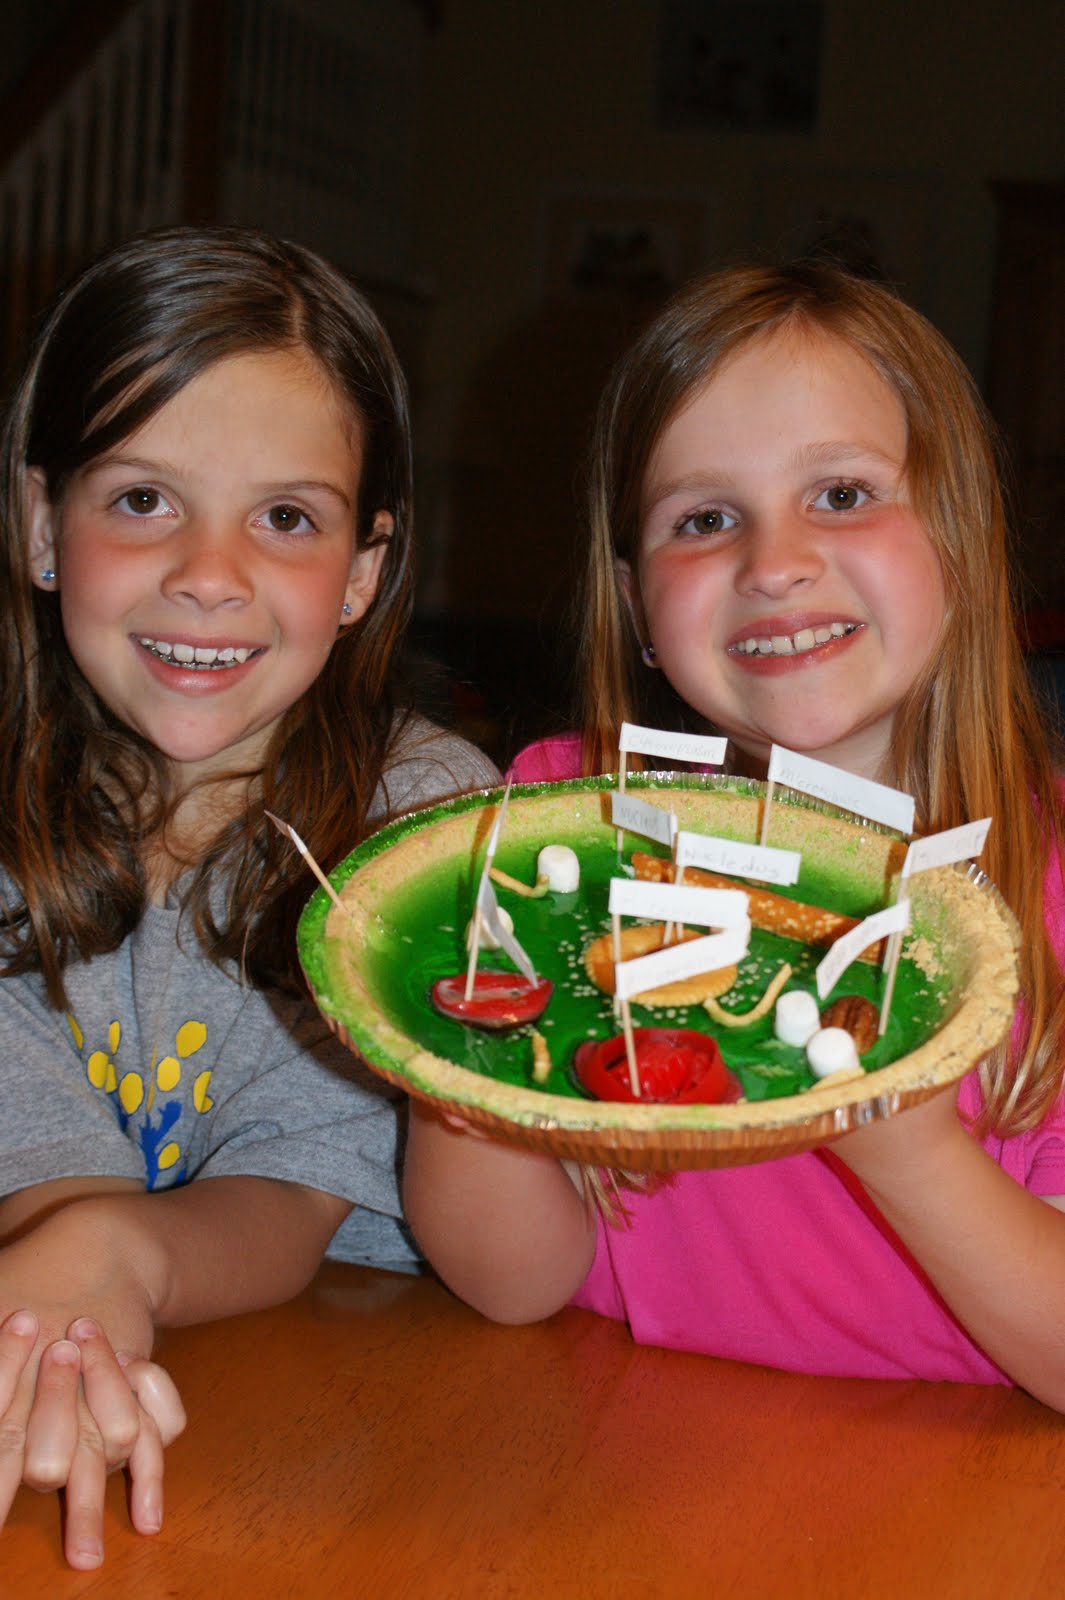 Edible Plant Cell Project Ideas http://5kidsmom-margot.blogspot.com/2010/04/edible-plant-cell.html